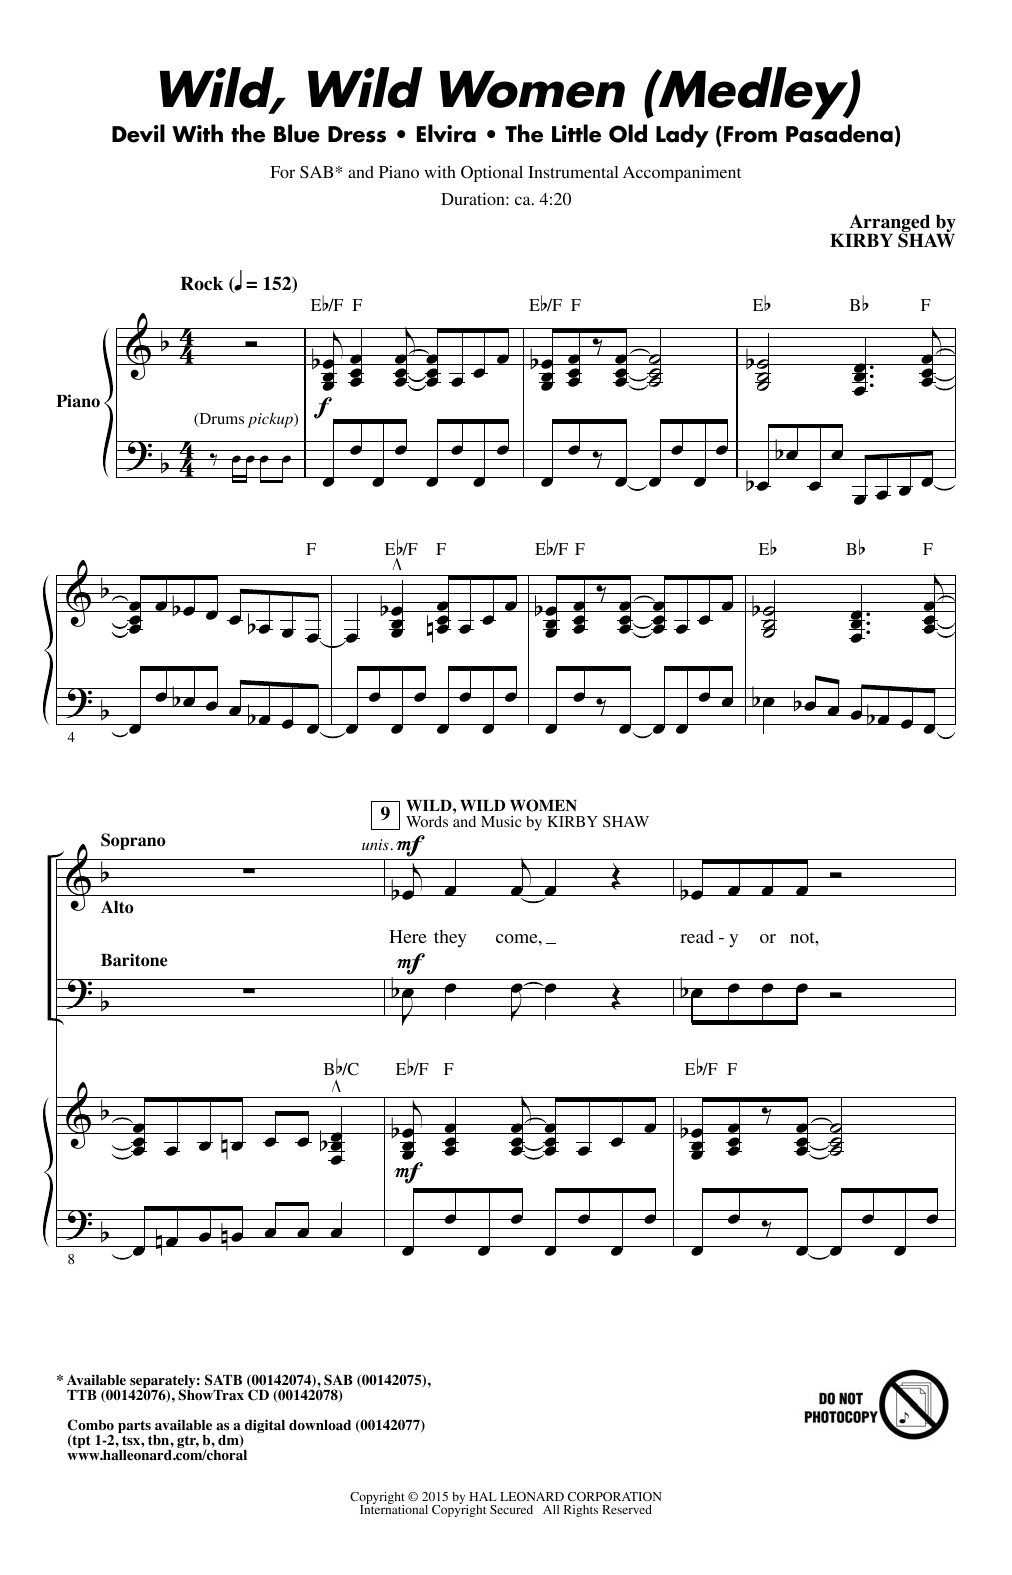 Wild, Wild Women (Medley) Sheet Music